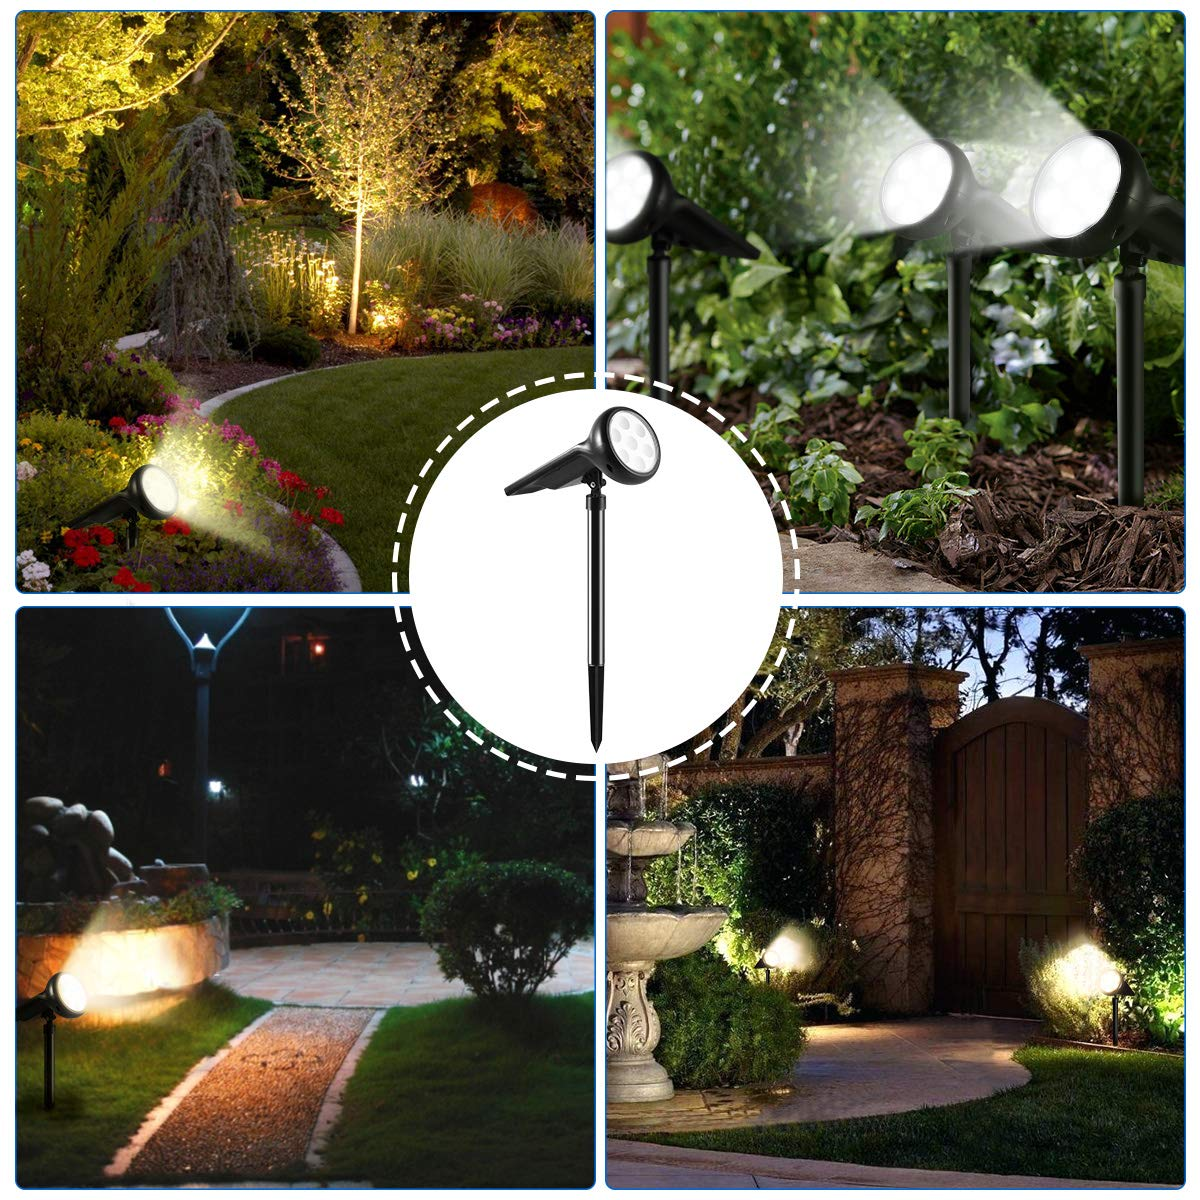 Pool Walkway Driveway Patio 4 Pack YUNLIGHTS Solar Lights Outdoor Adjustable Solar Garden Spotlights Stake with Auto On//Off for Yard Waterproof 7 LED Solar Landscape Light Outdoor Pathway